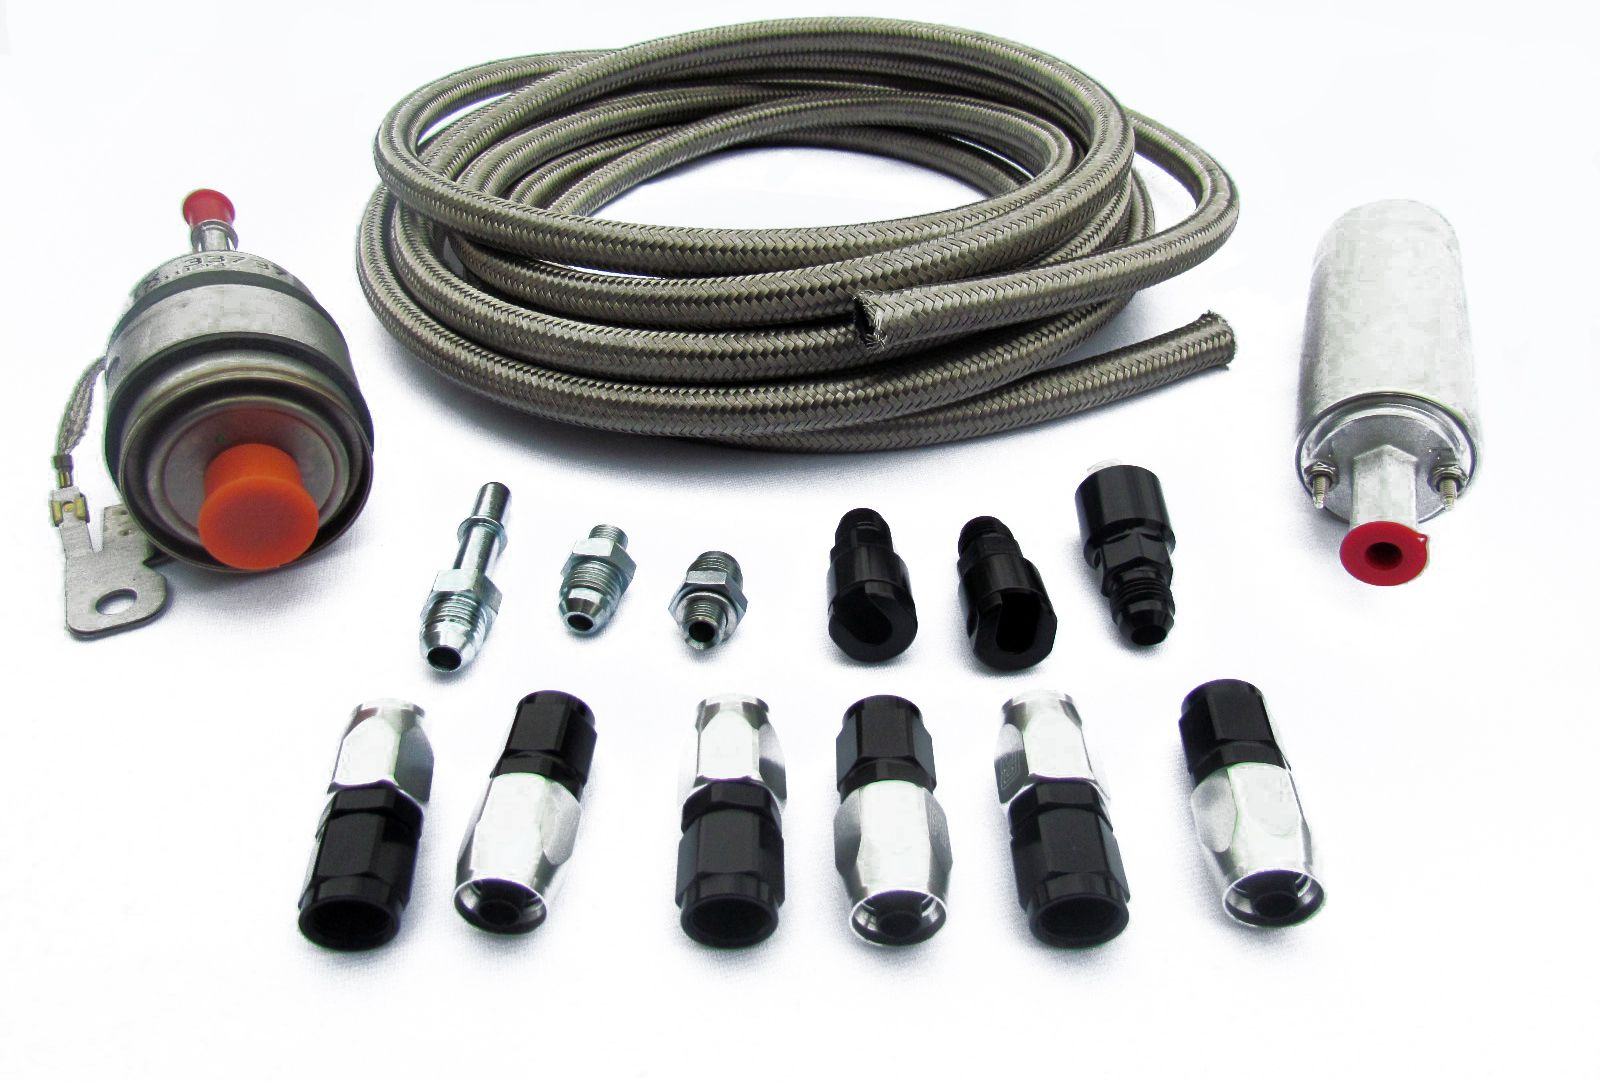 medium resolution of ls vortec external fuel pump kit efi conversion kits ls1 ls2 ls3 swap wiring harness